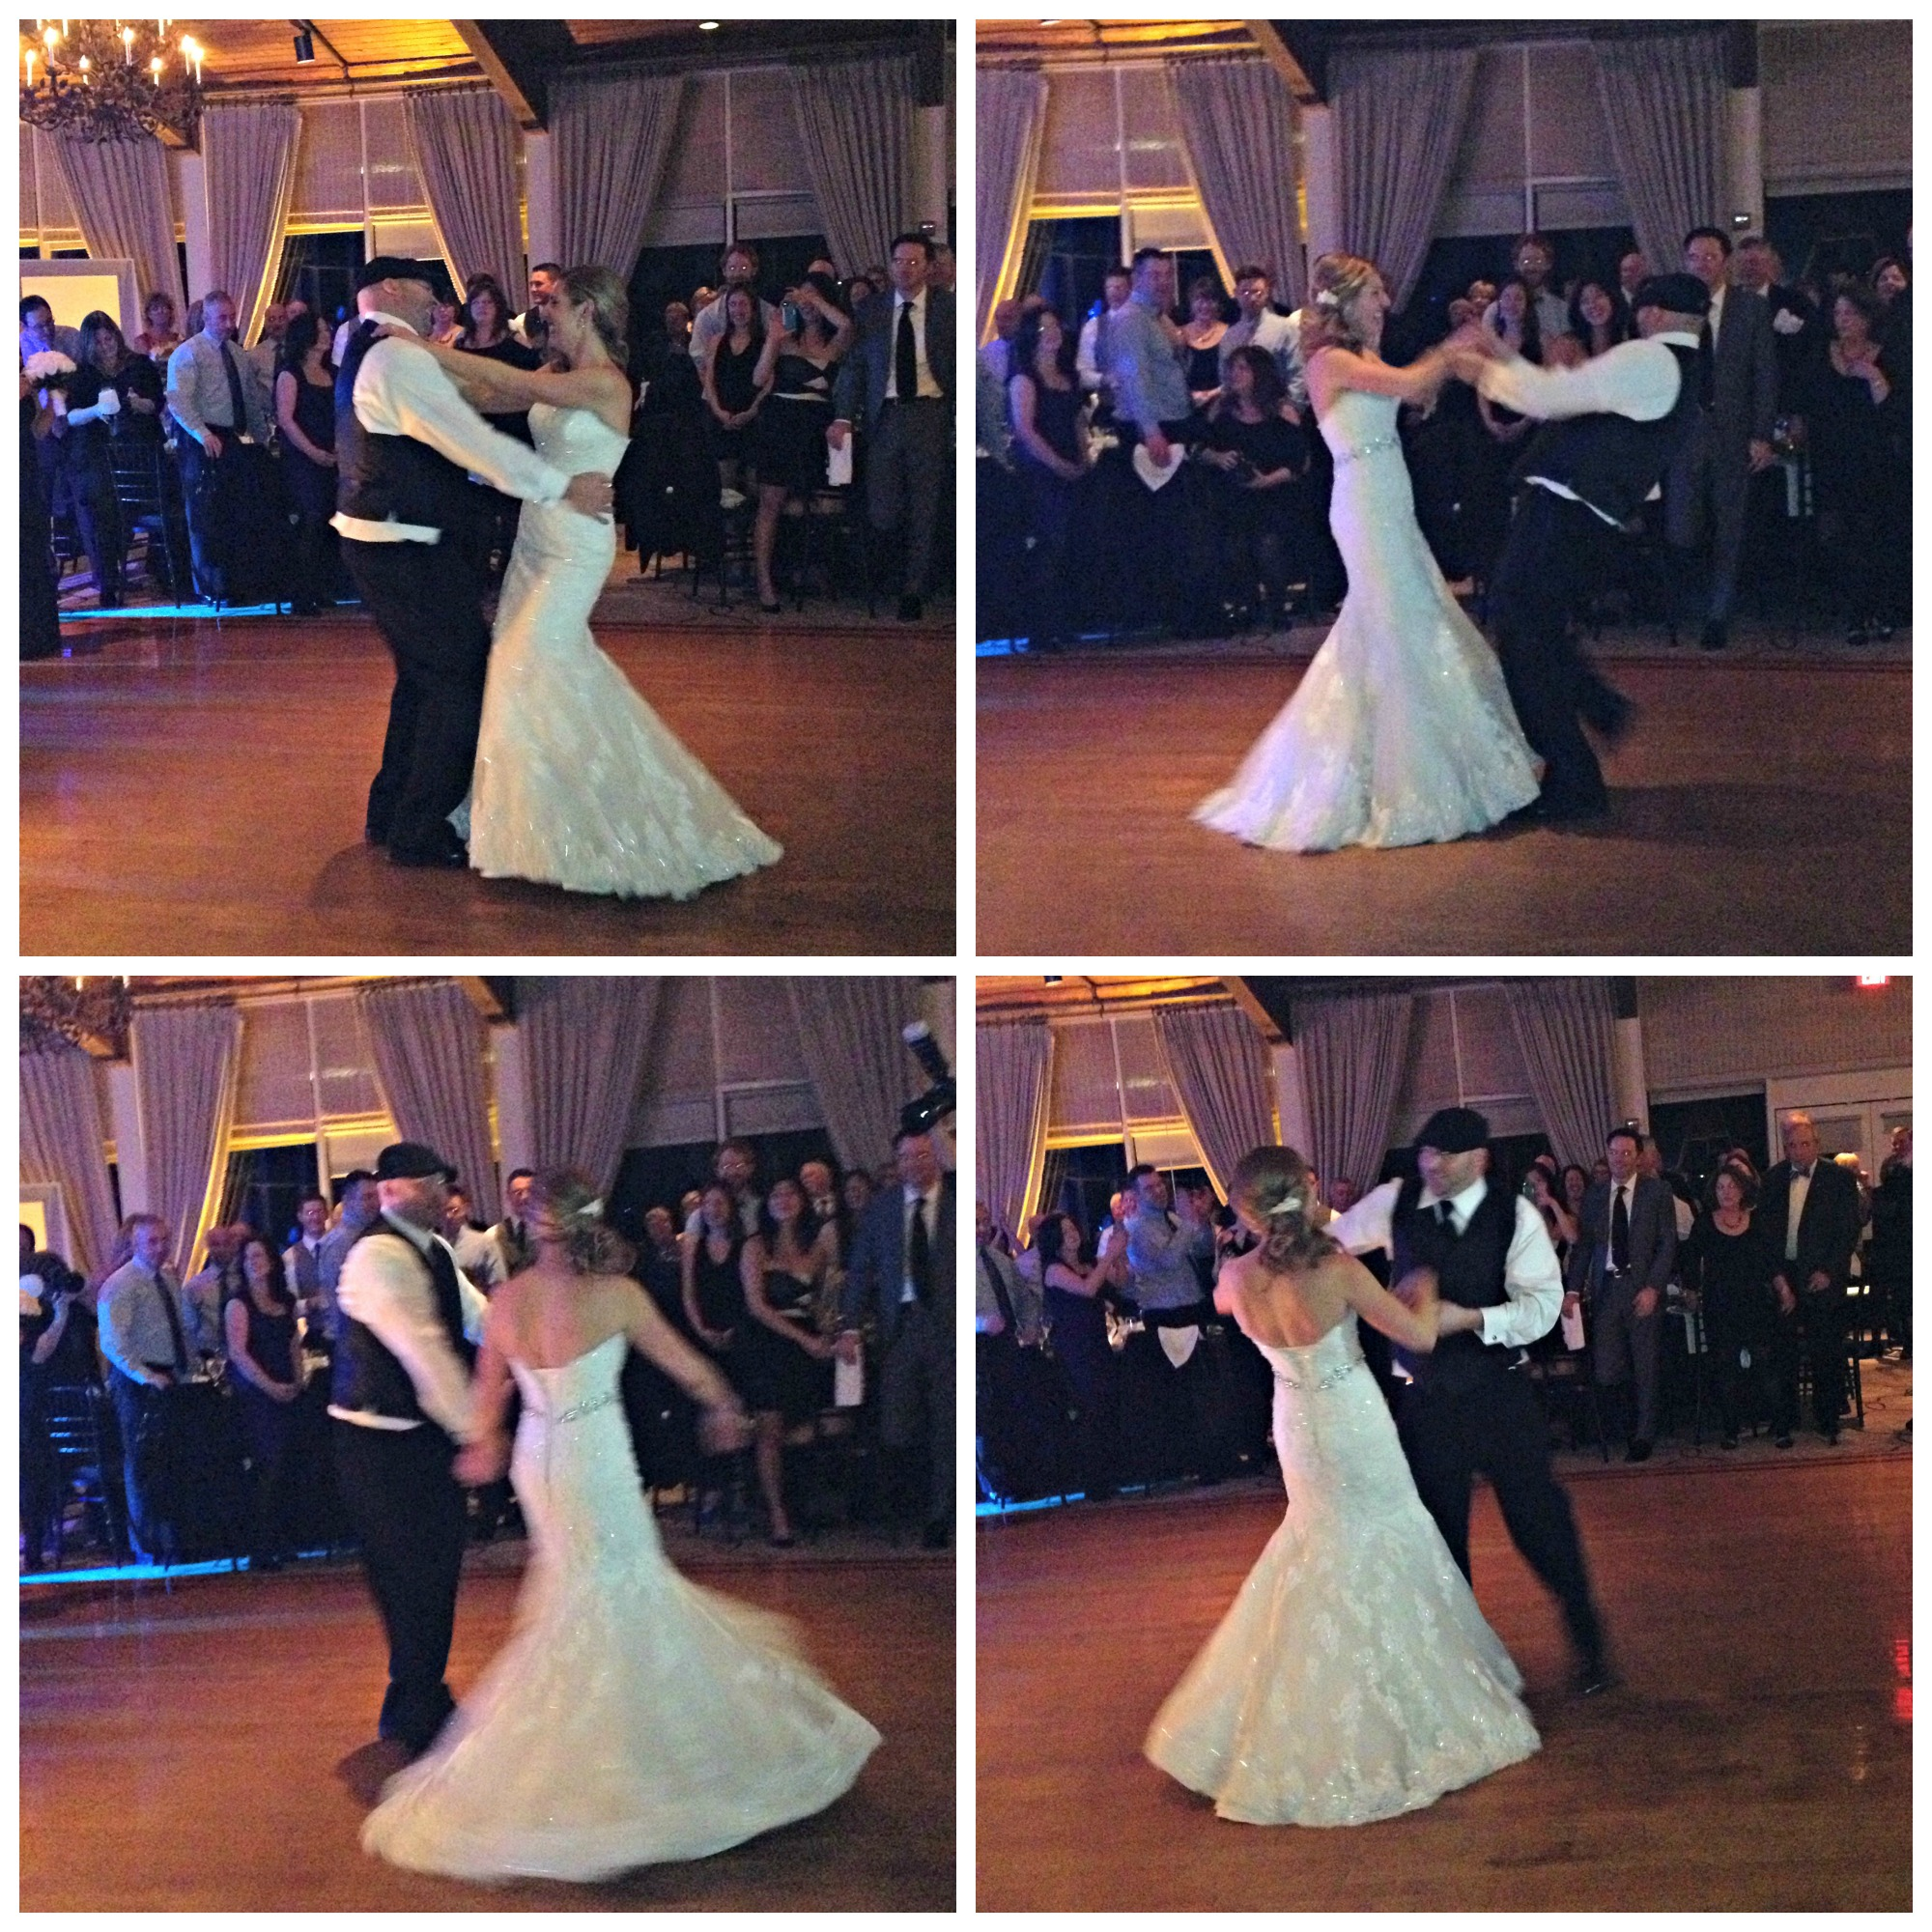 Cate & Joe's Wedding: First Dance